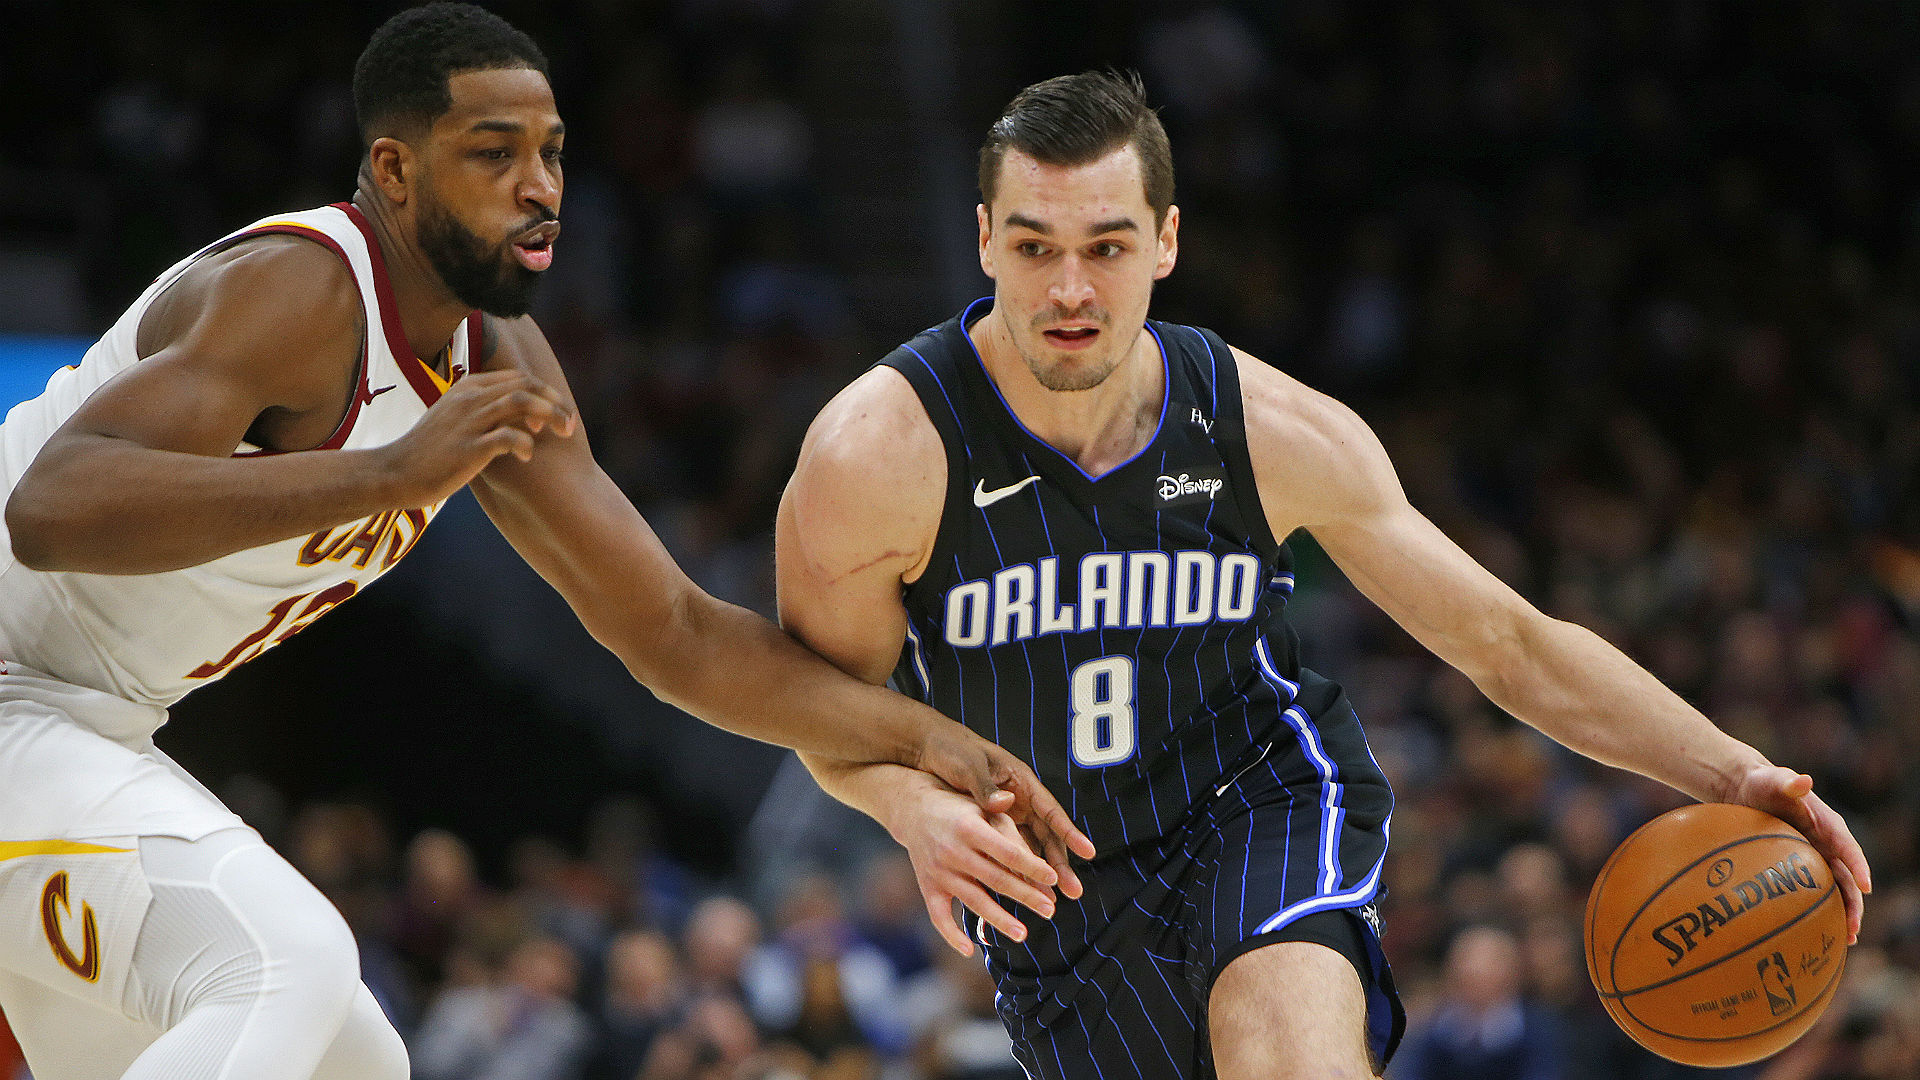 Mario Hezonja agrees to join New York Knicks for one season